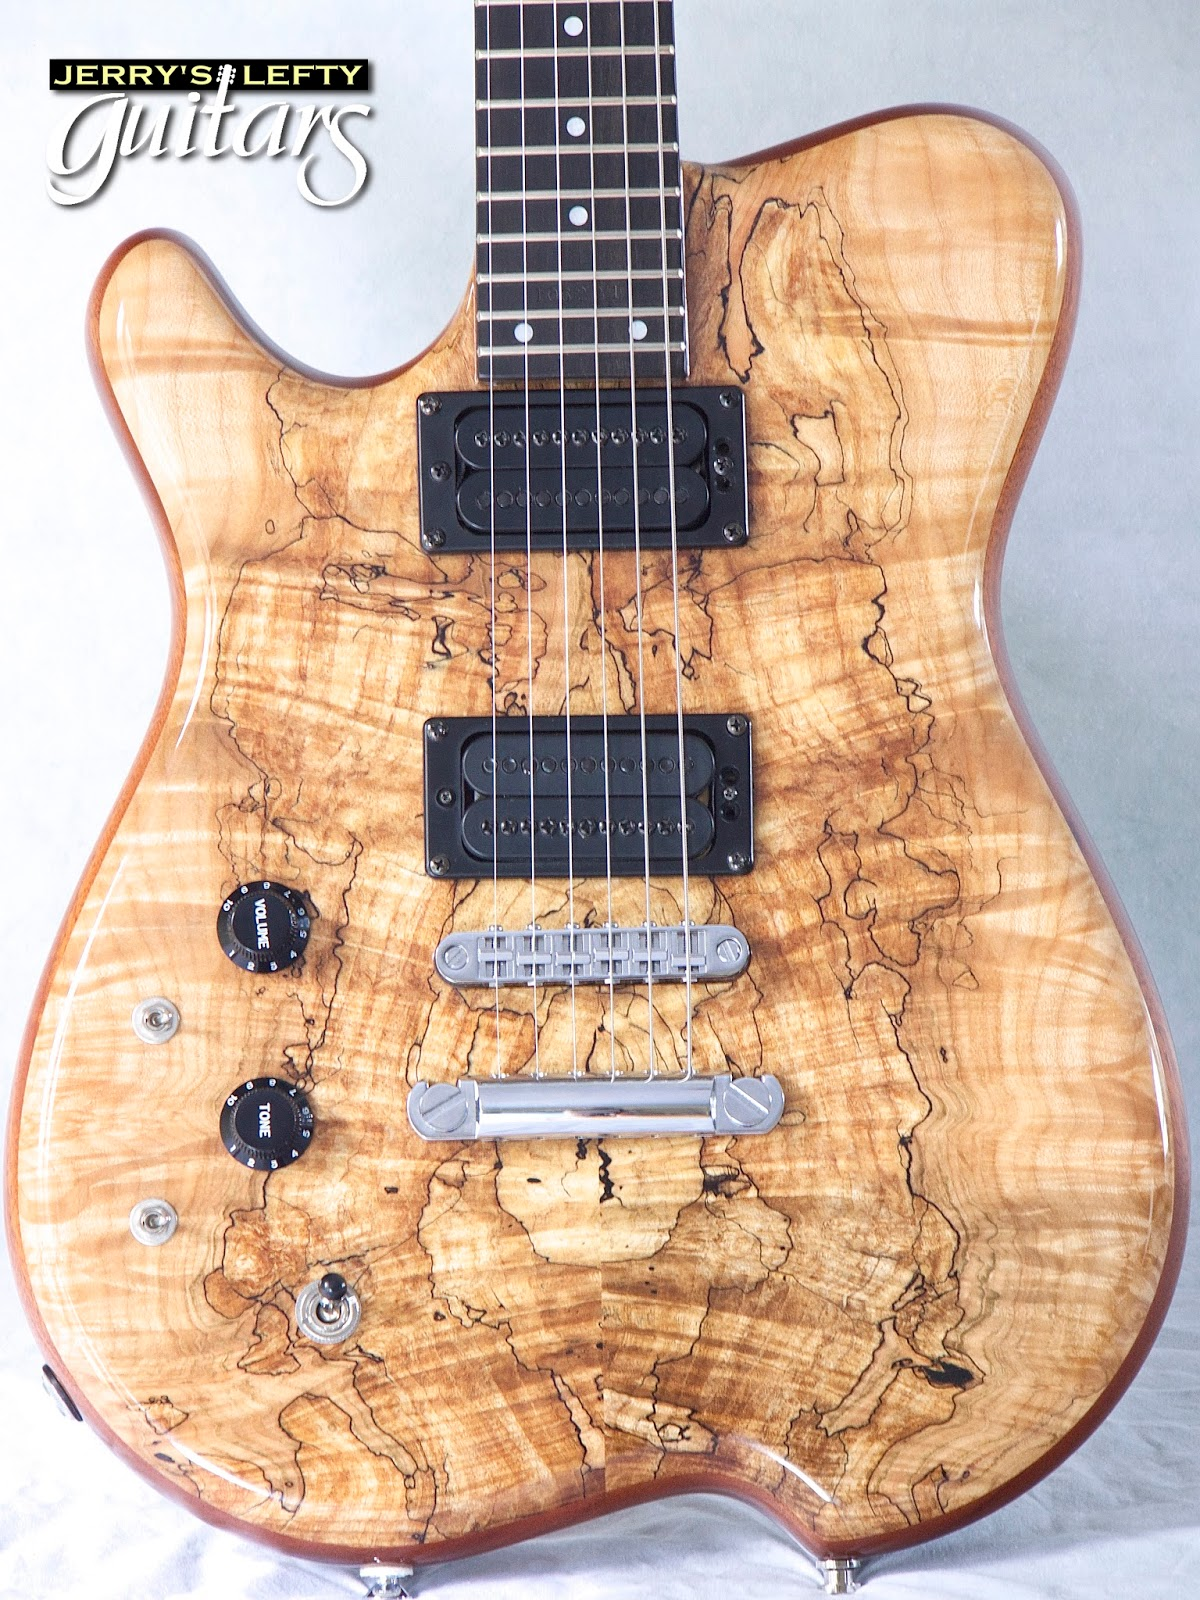 jerry 39 s lefty guitars newest guitar arrivals updated weekly carvin holdsworth spalted maple. Black Bedroom Furniture Sets. Home Design Ideas